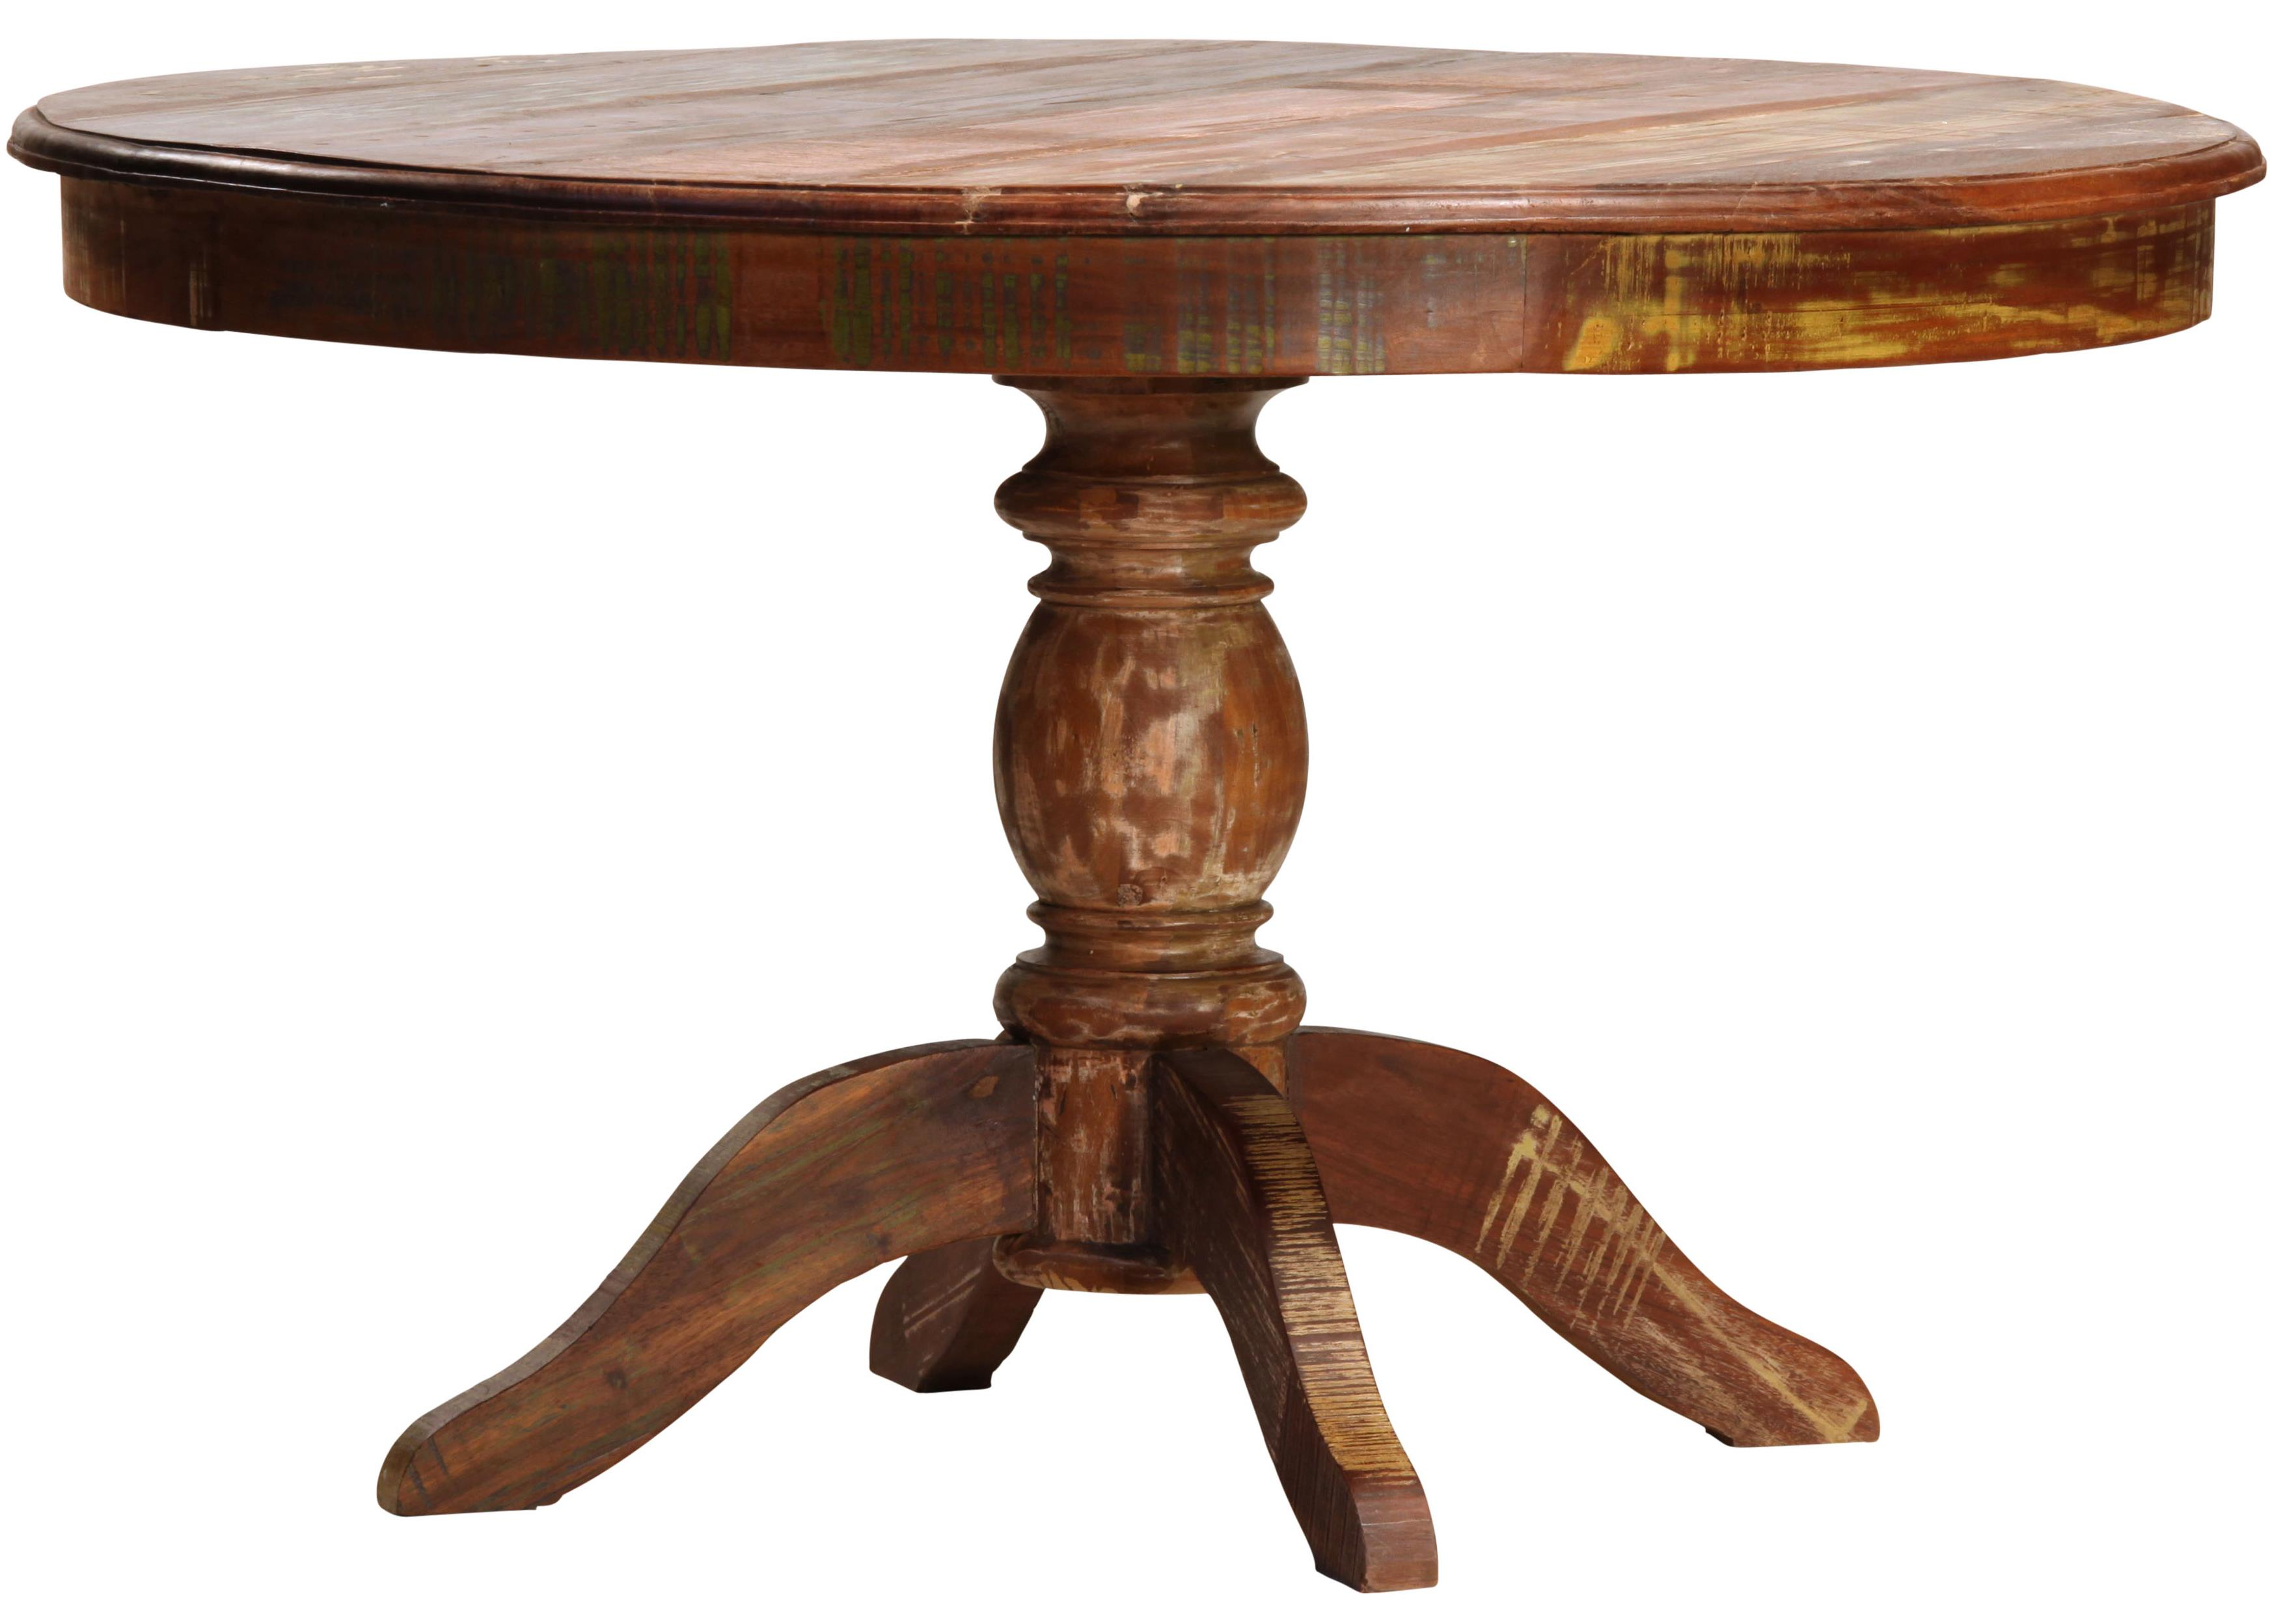 Dovetail Furniture Dovetail Round Dining Table W Pedestal